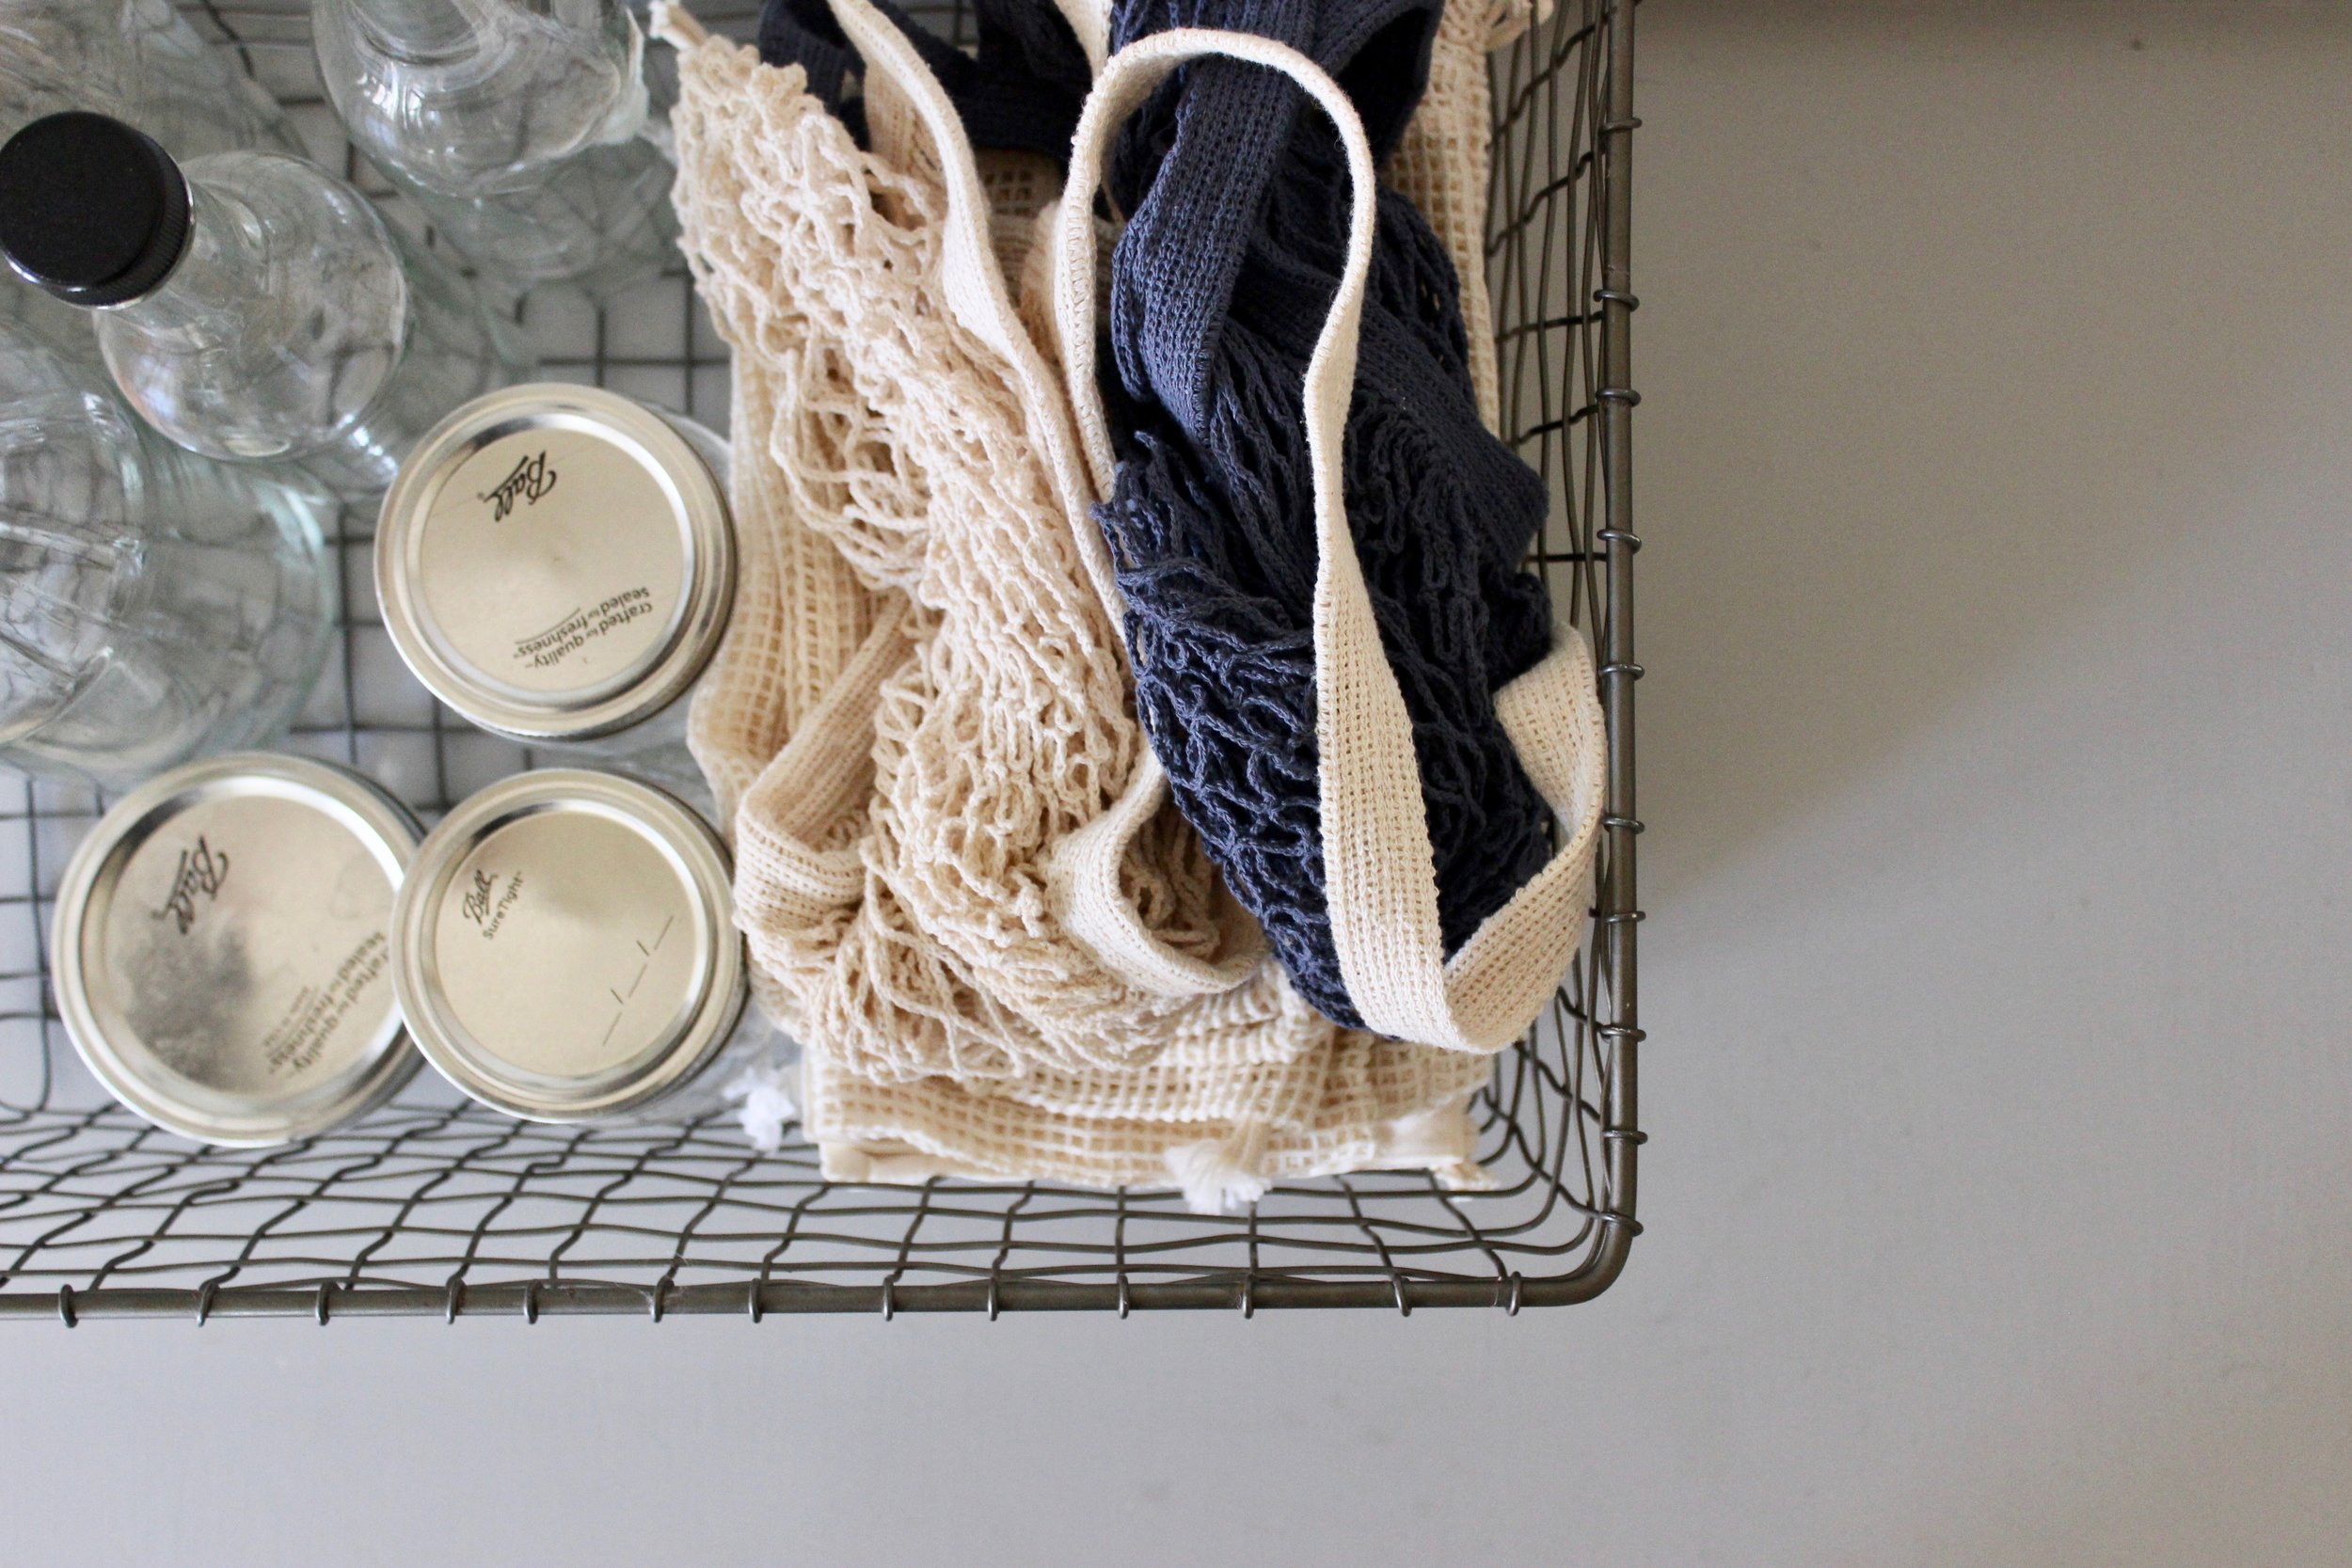 How to build a zero waste grocery kit | Litterless